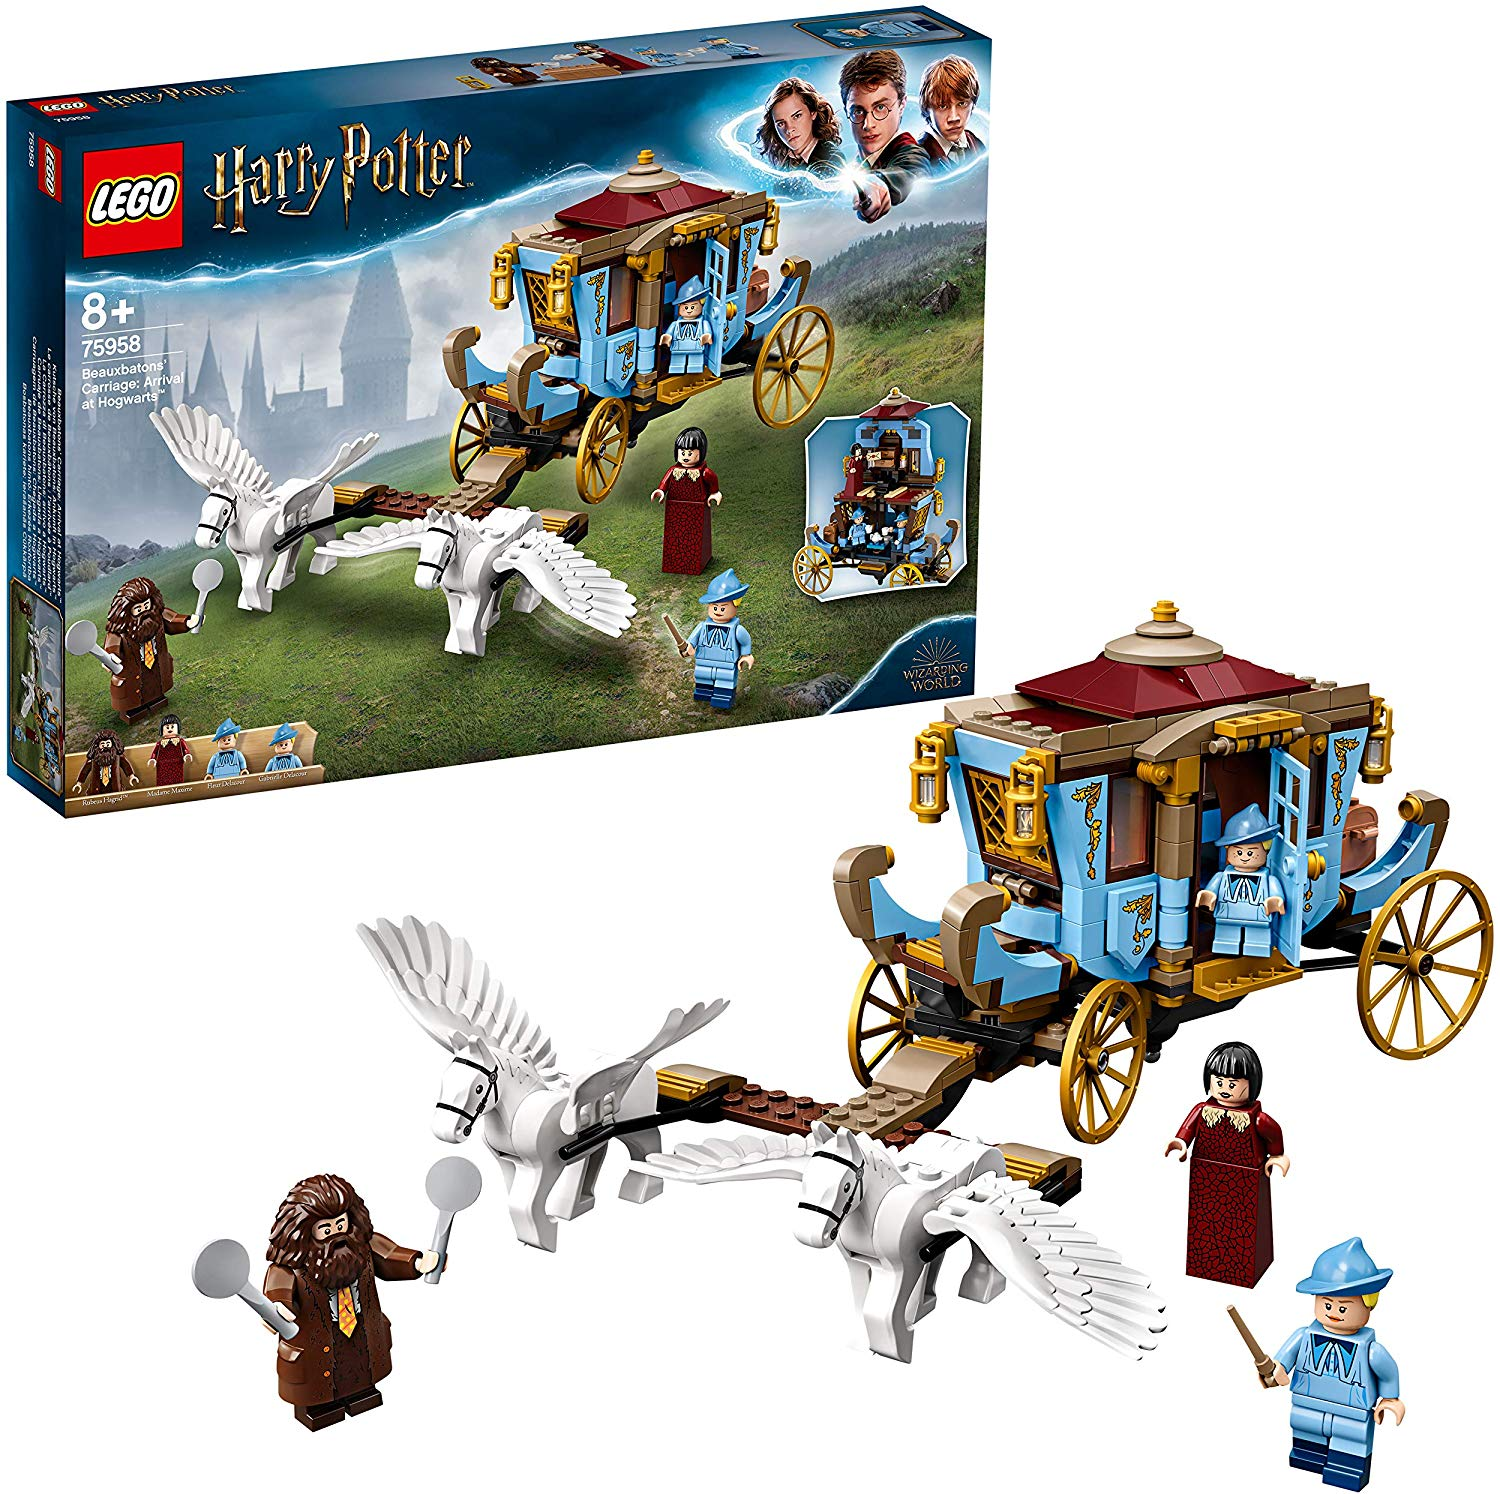 Save £9 on LEGO 75958 Harry Potter Beauxbatons' Carriage